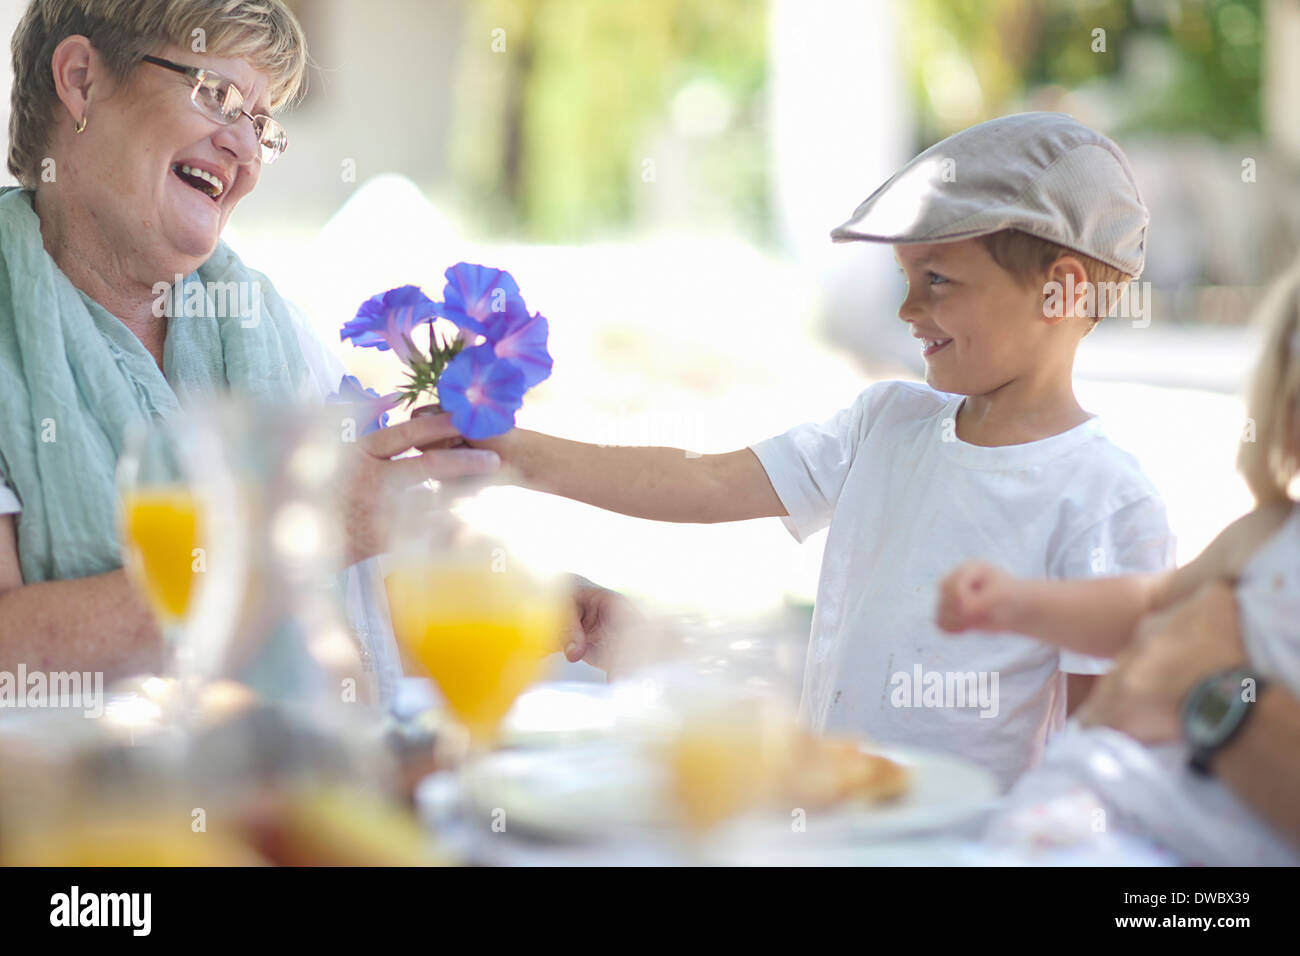 Boy giving flowers to grandmother - Stock Image